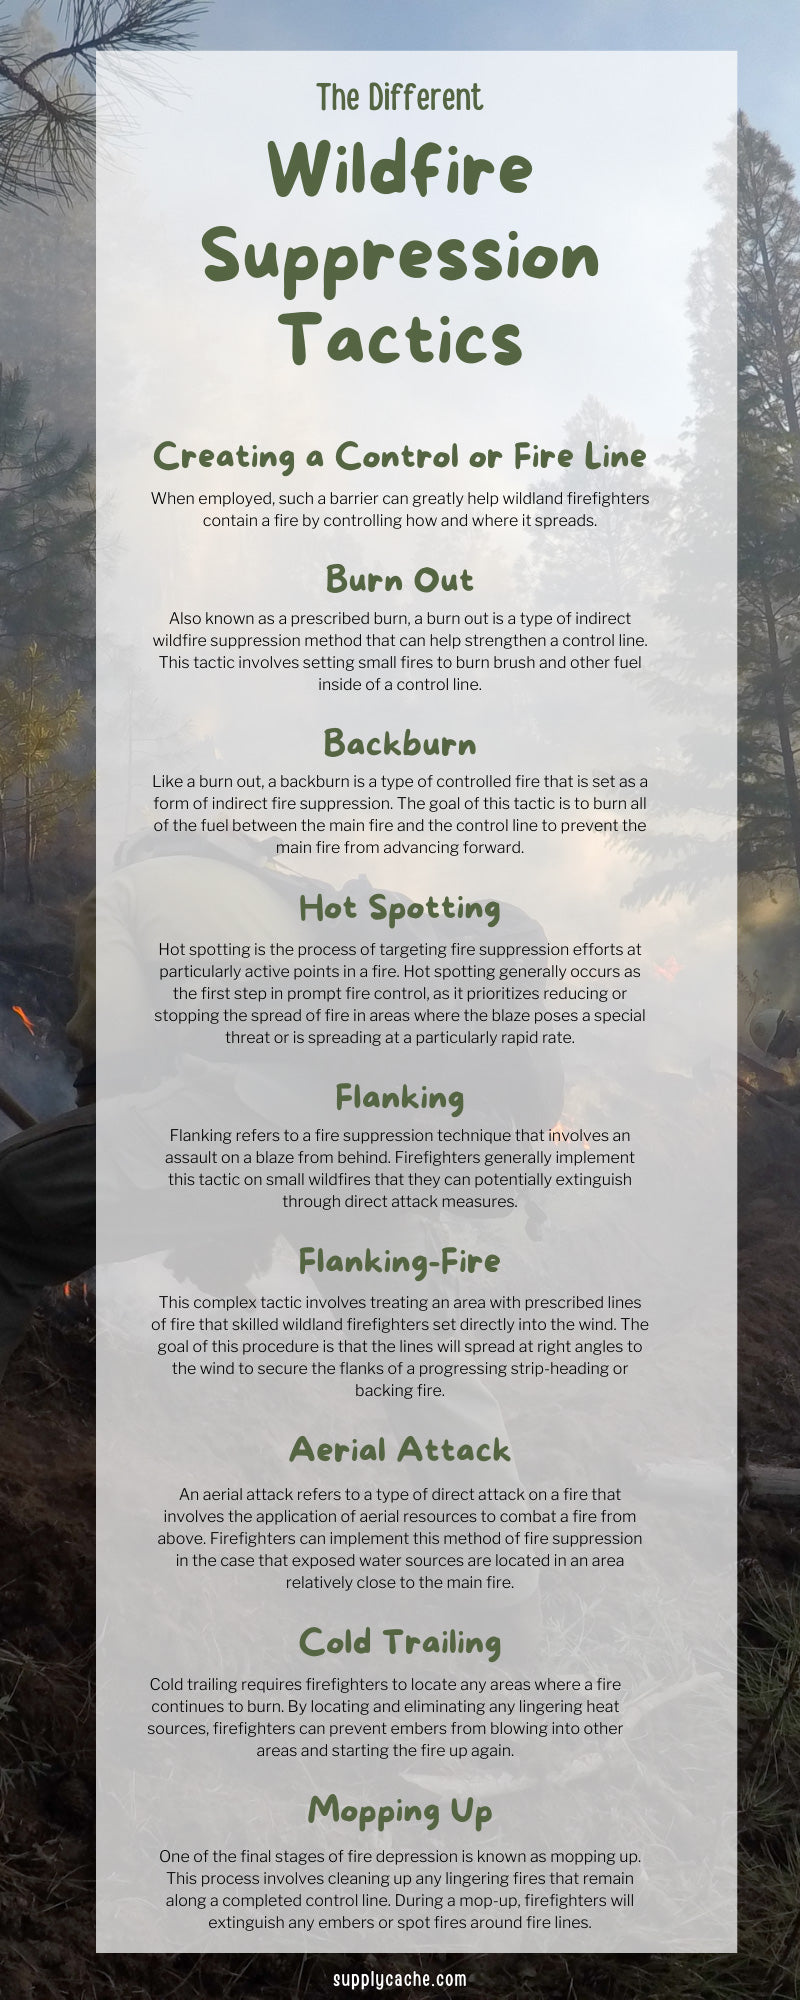 The Different Wildfire Suppression Tactics